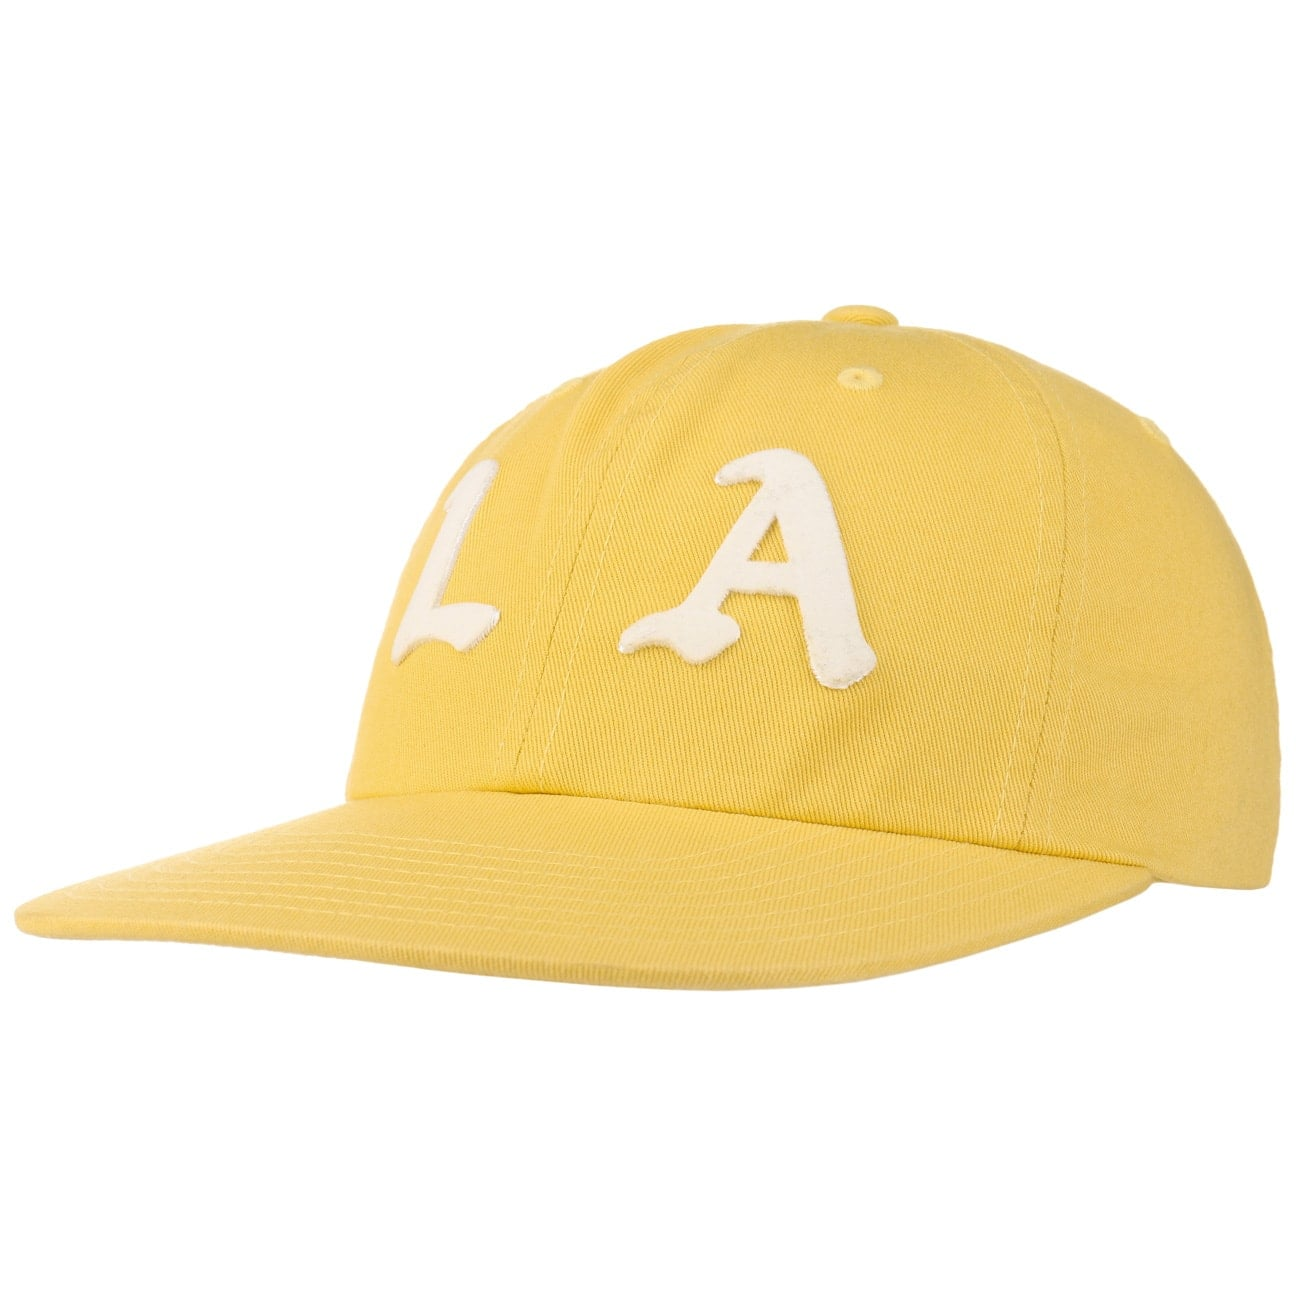 Casquette Cities Strapback by HUF  baseball cap